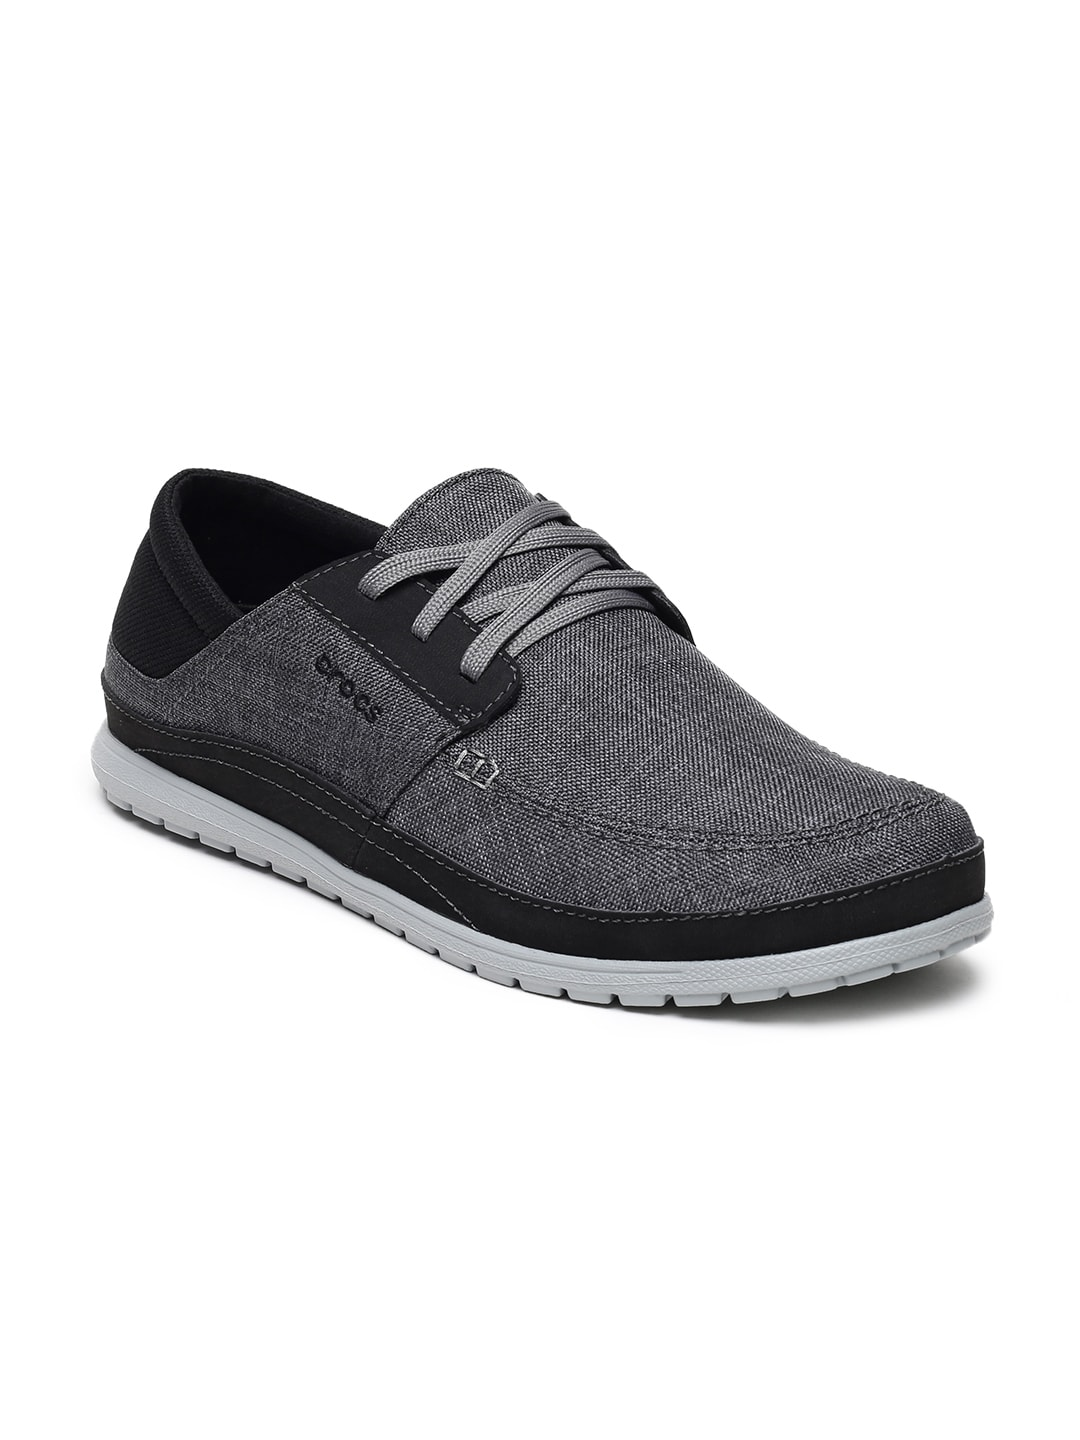 661692bb0 Crocs Footwear - Buy Crocs Footwear Online in India